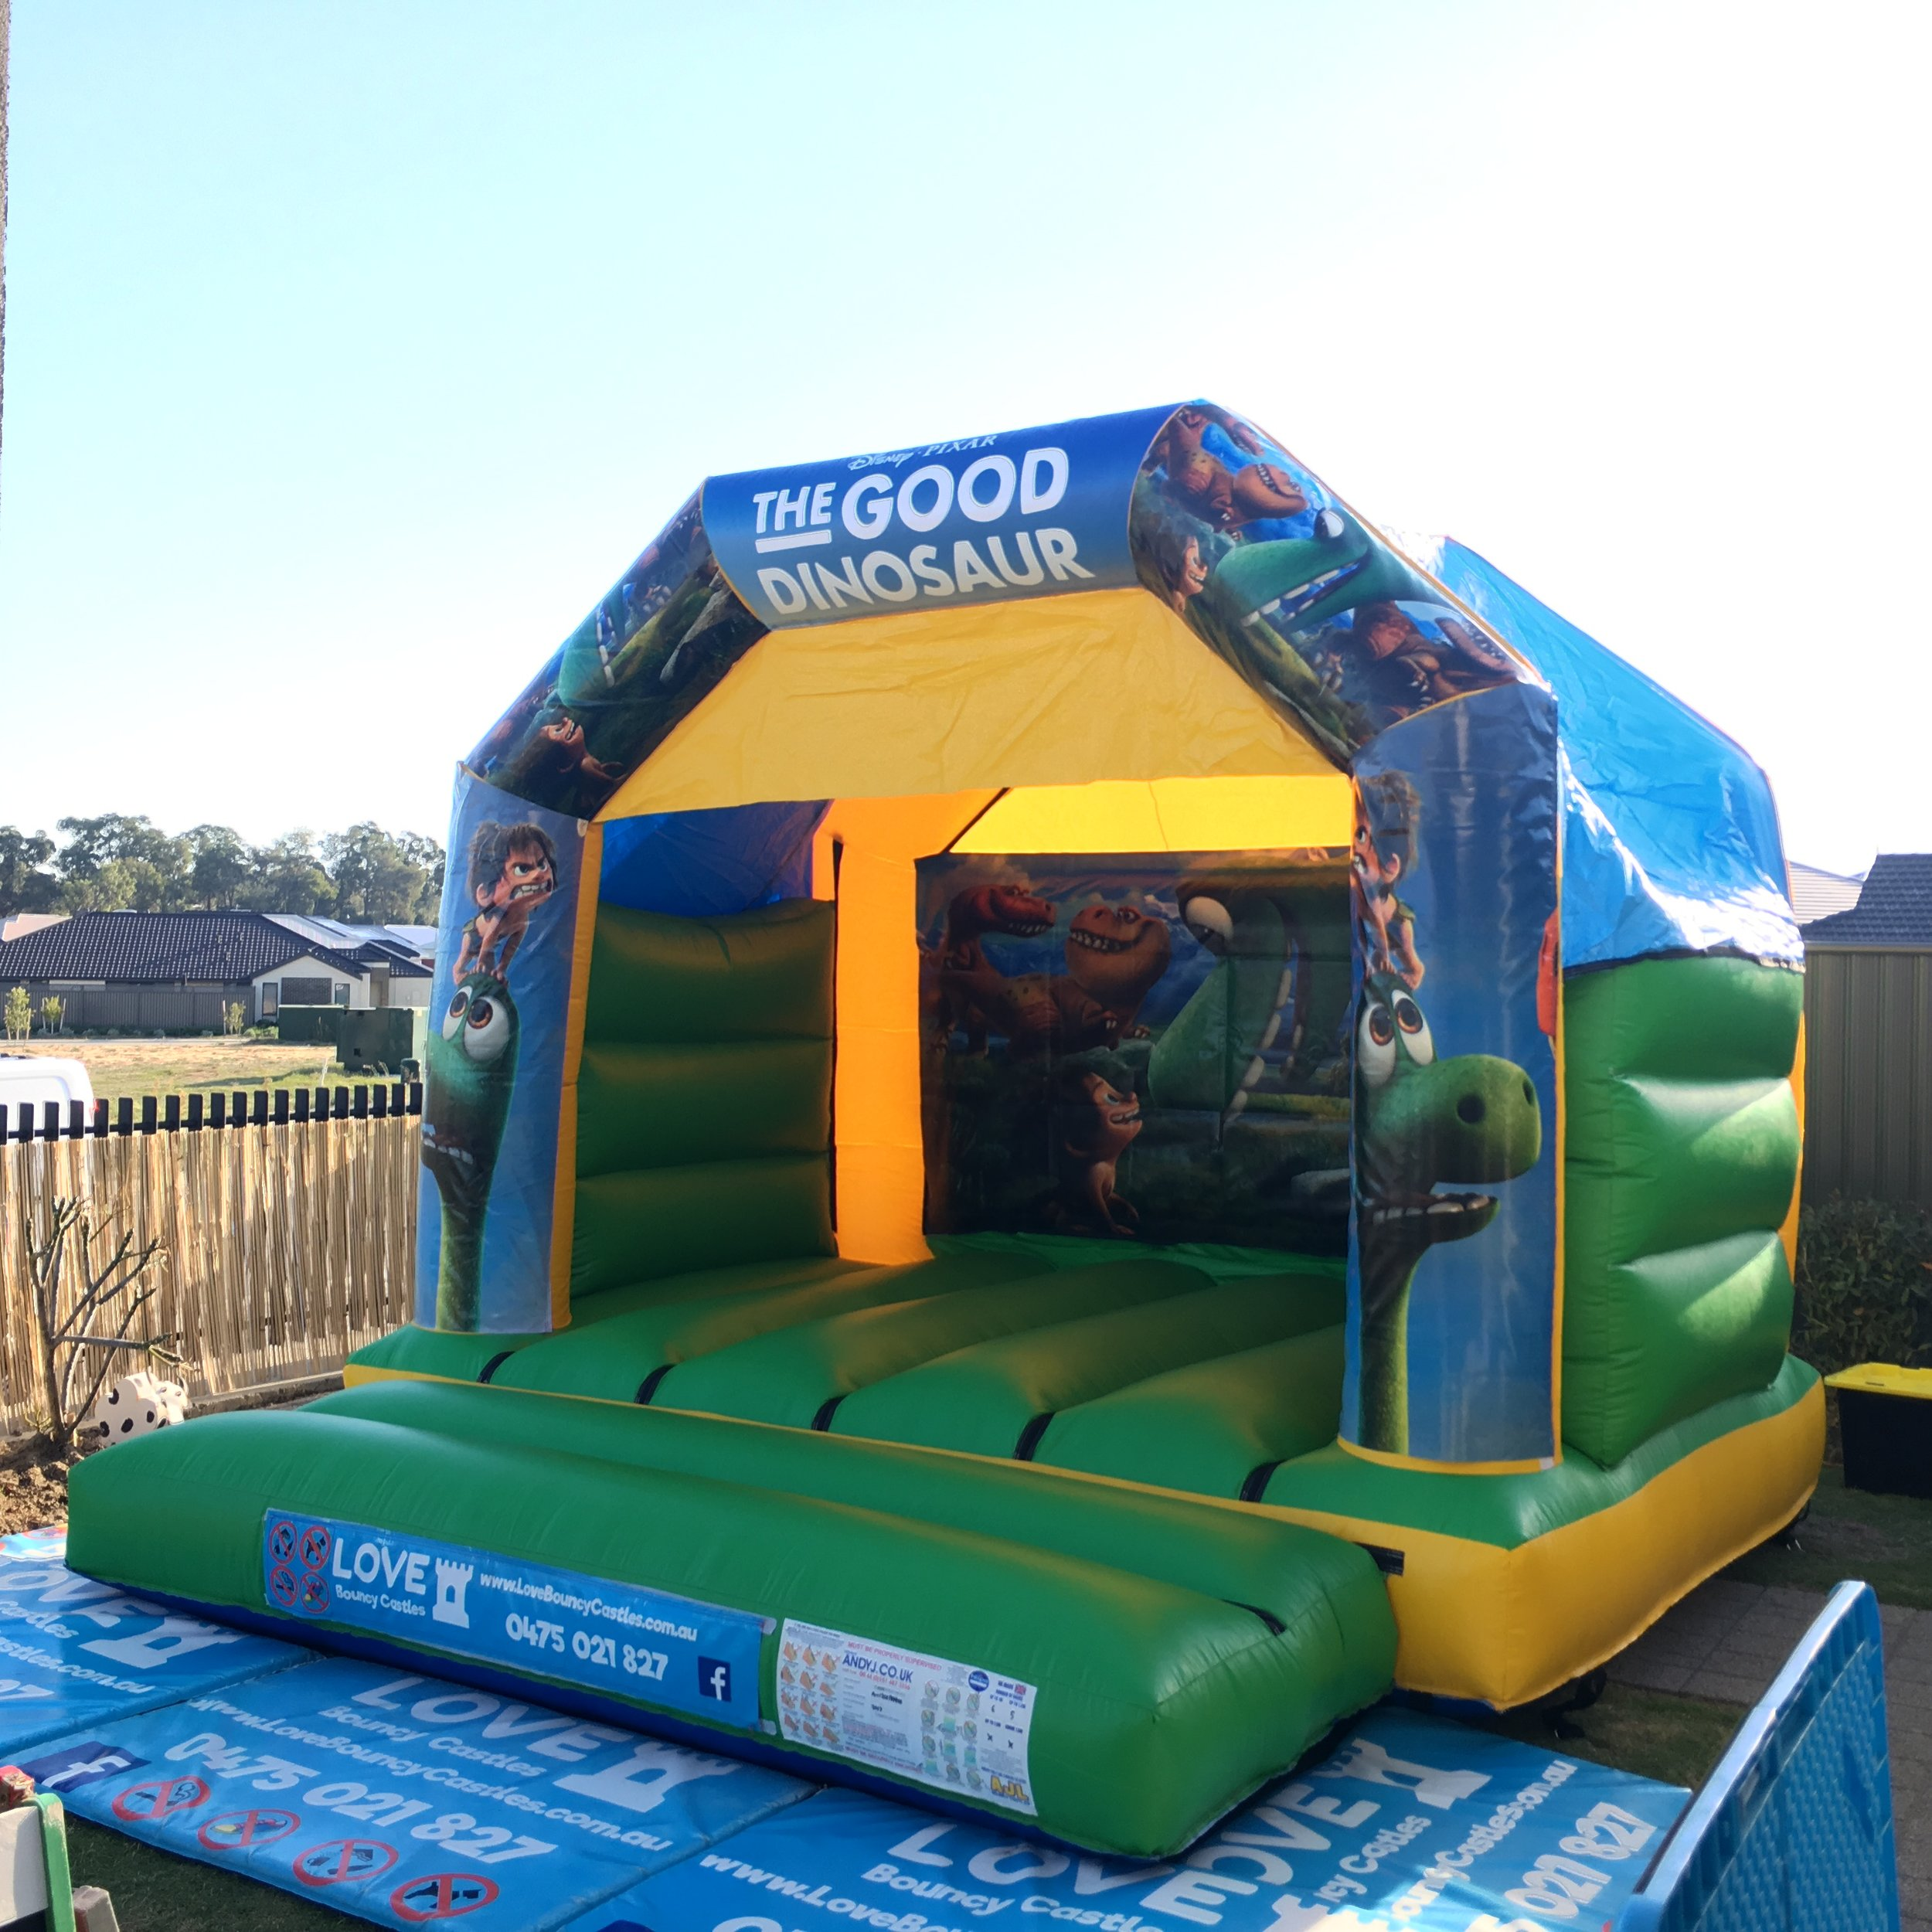 Copy of Dinosaur Themed Bouncy Castle Hire Perth, WA